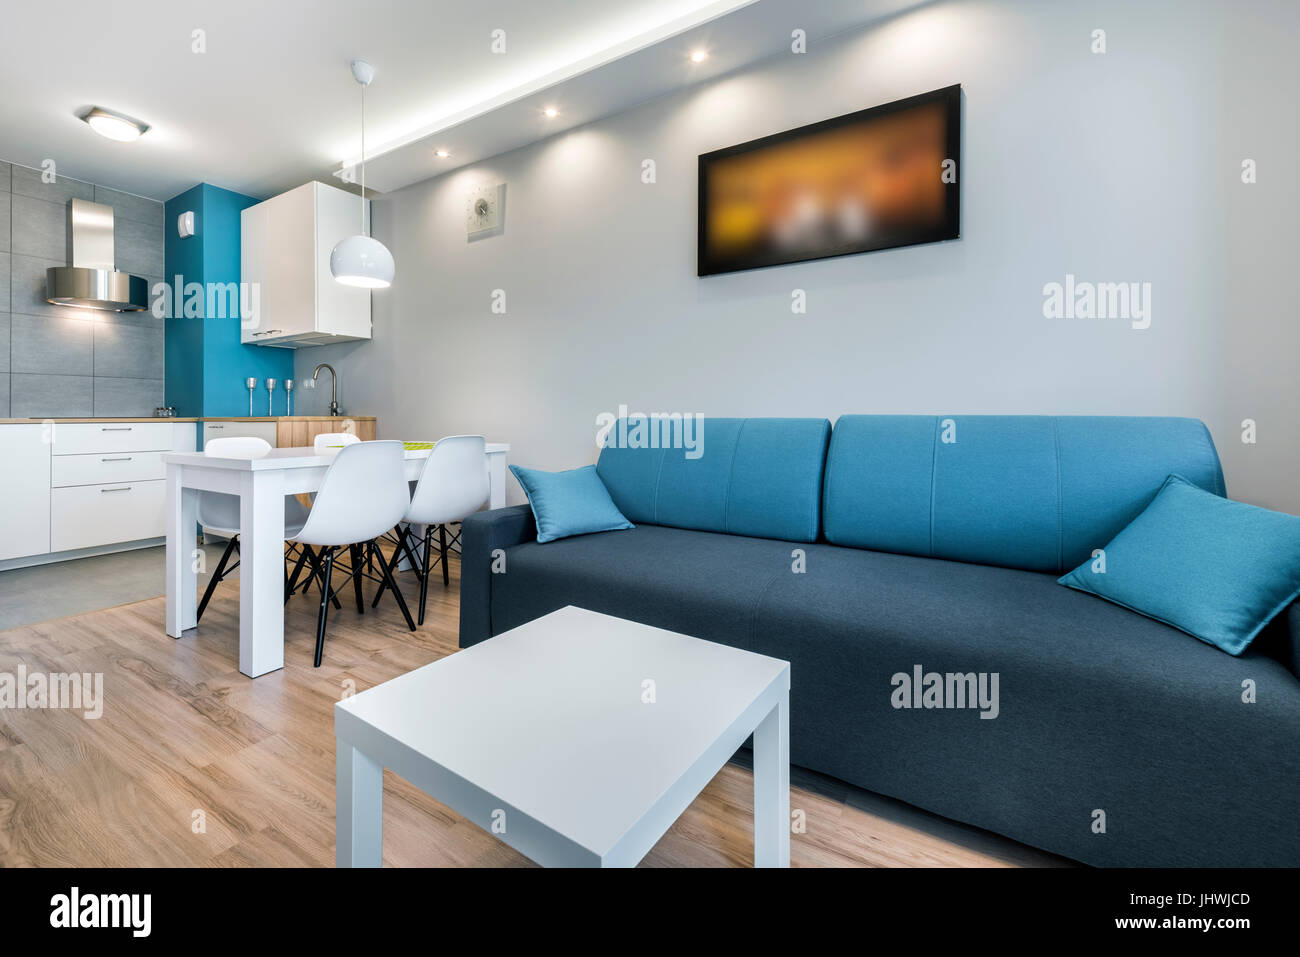 Modern Living Room With Grey Walls And Blue Sofa Stock Photo Alamy